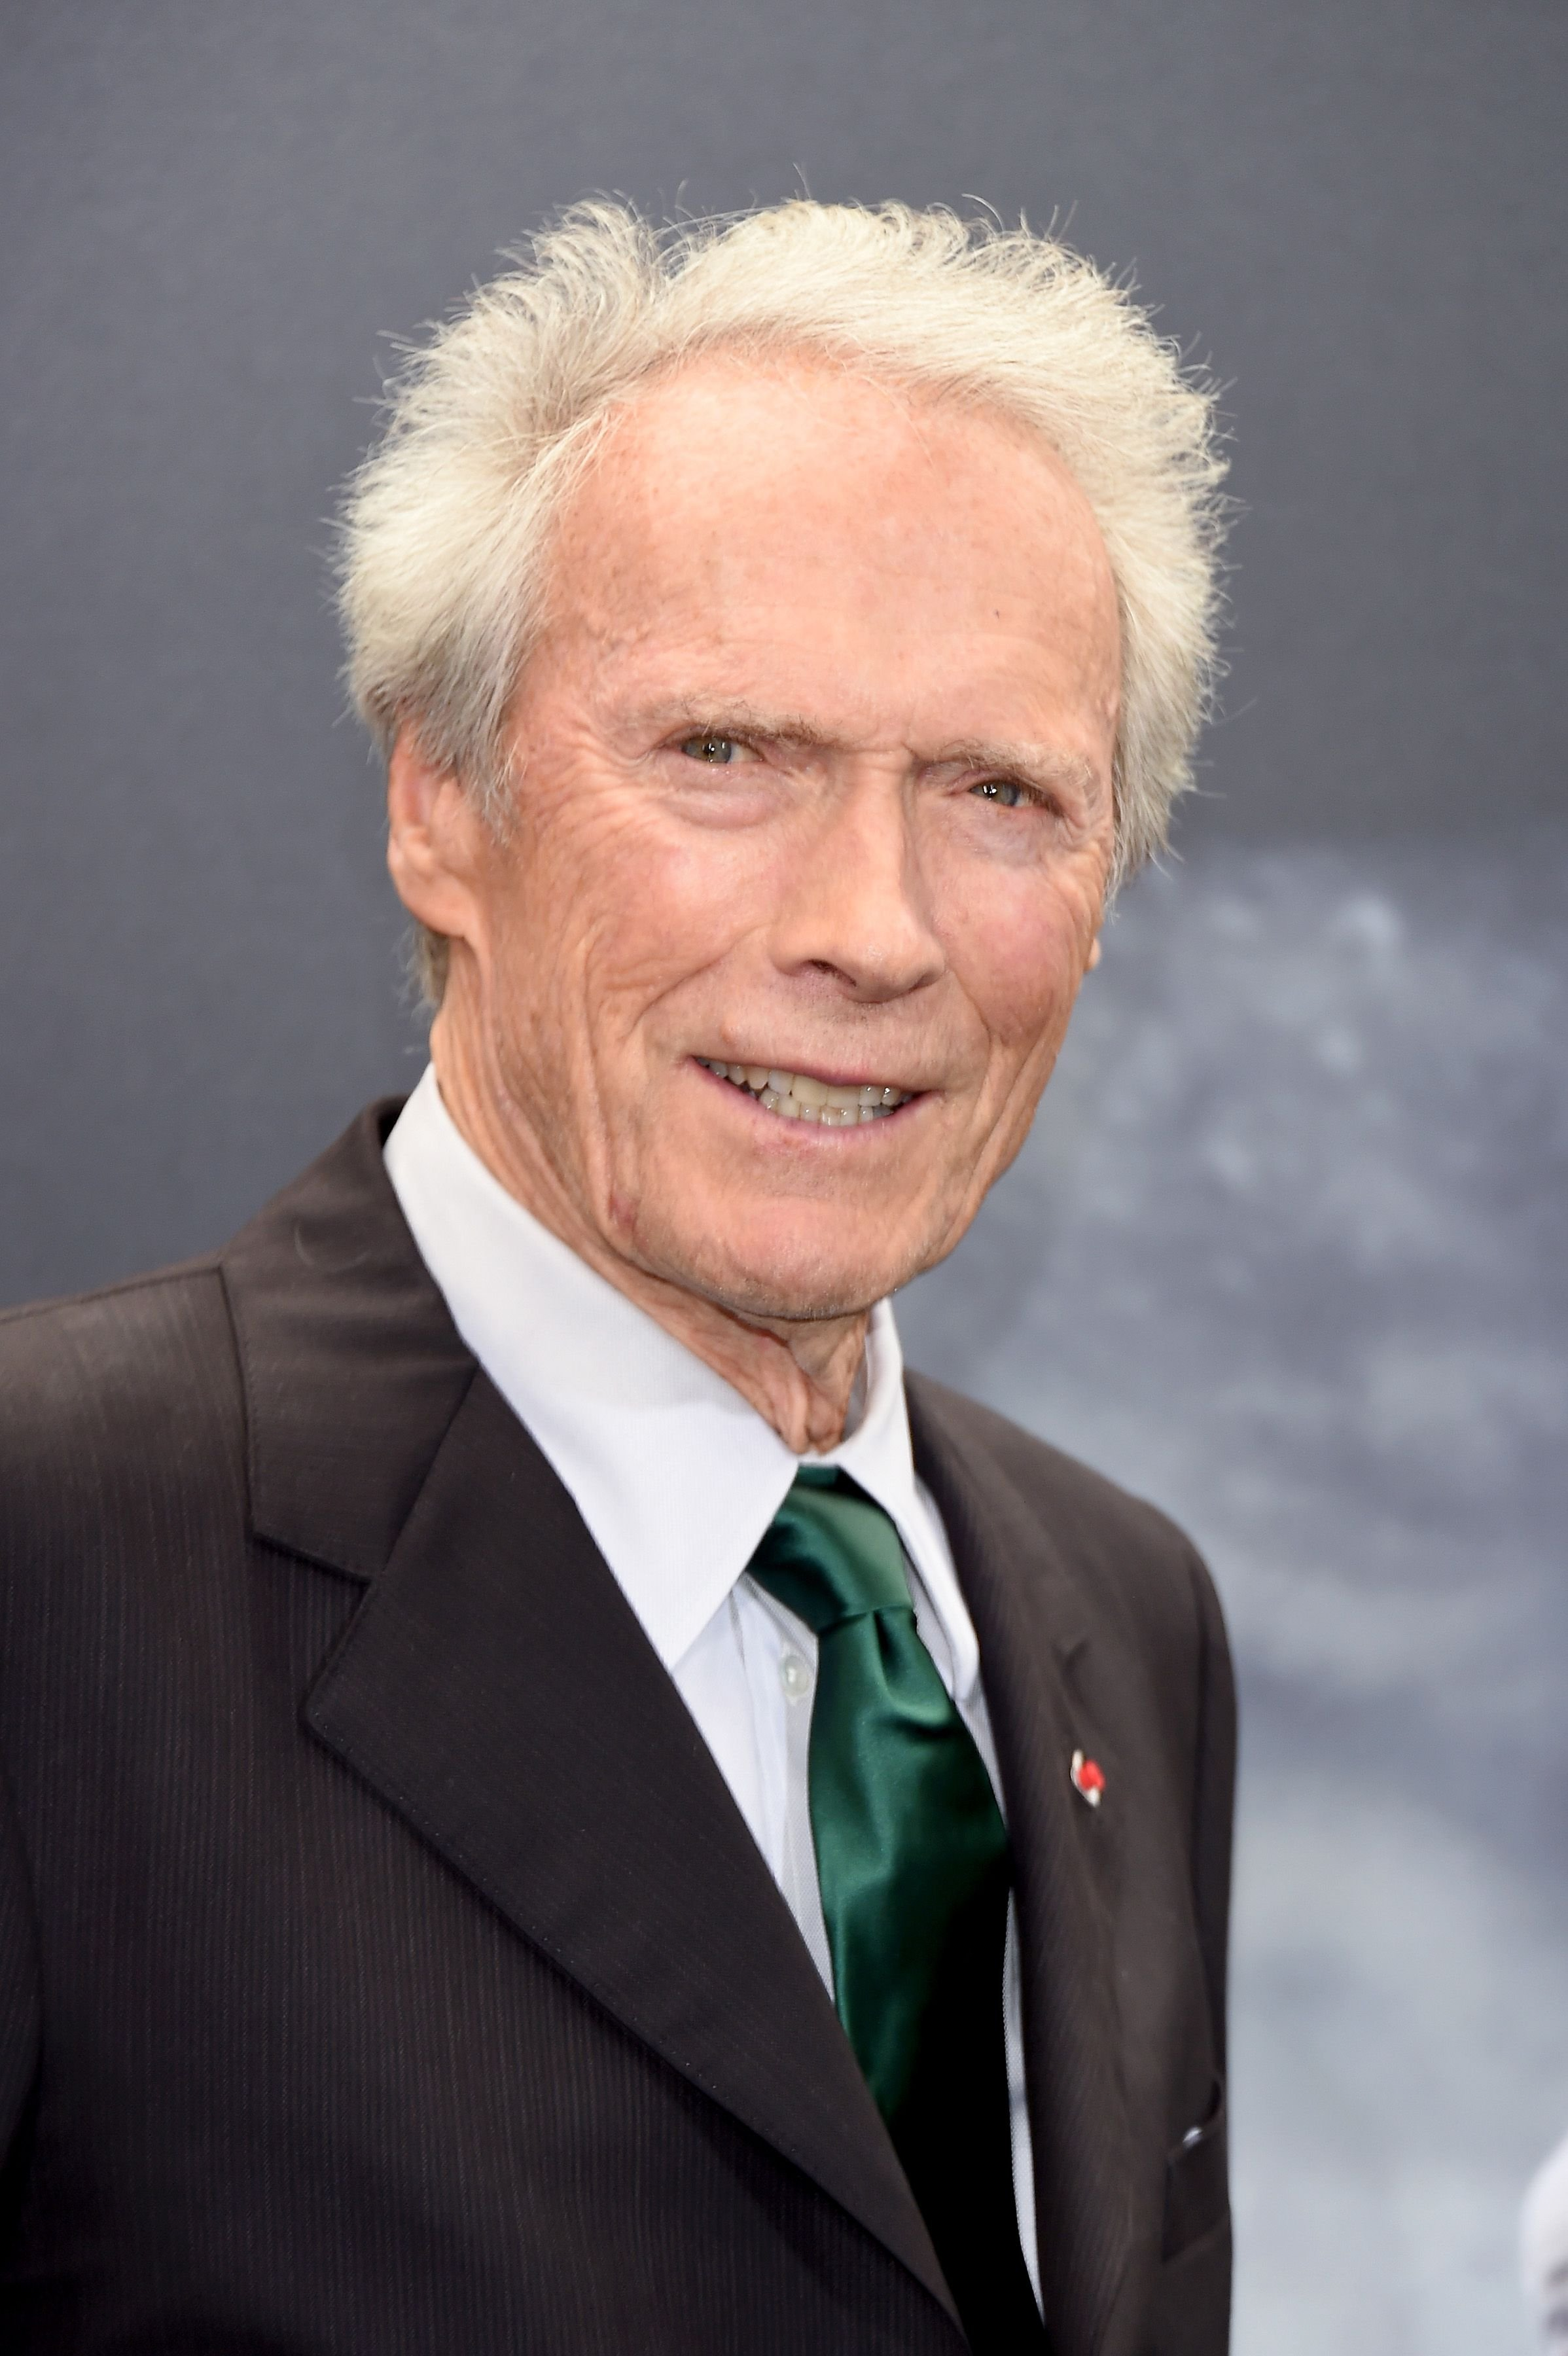 """Clint Eastwood at the """"Sully"""" New York Premiere at Alice Tully Hall on September 6, 2016 in New York City 